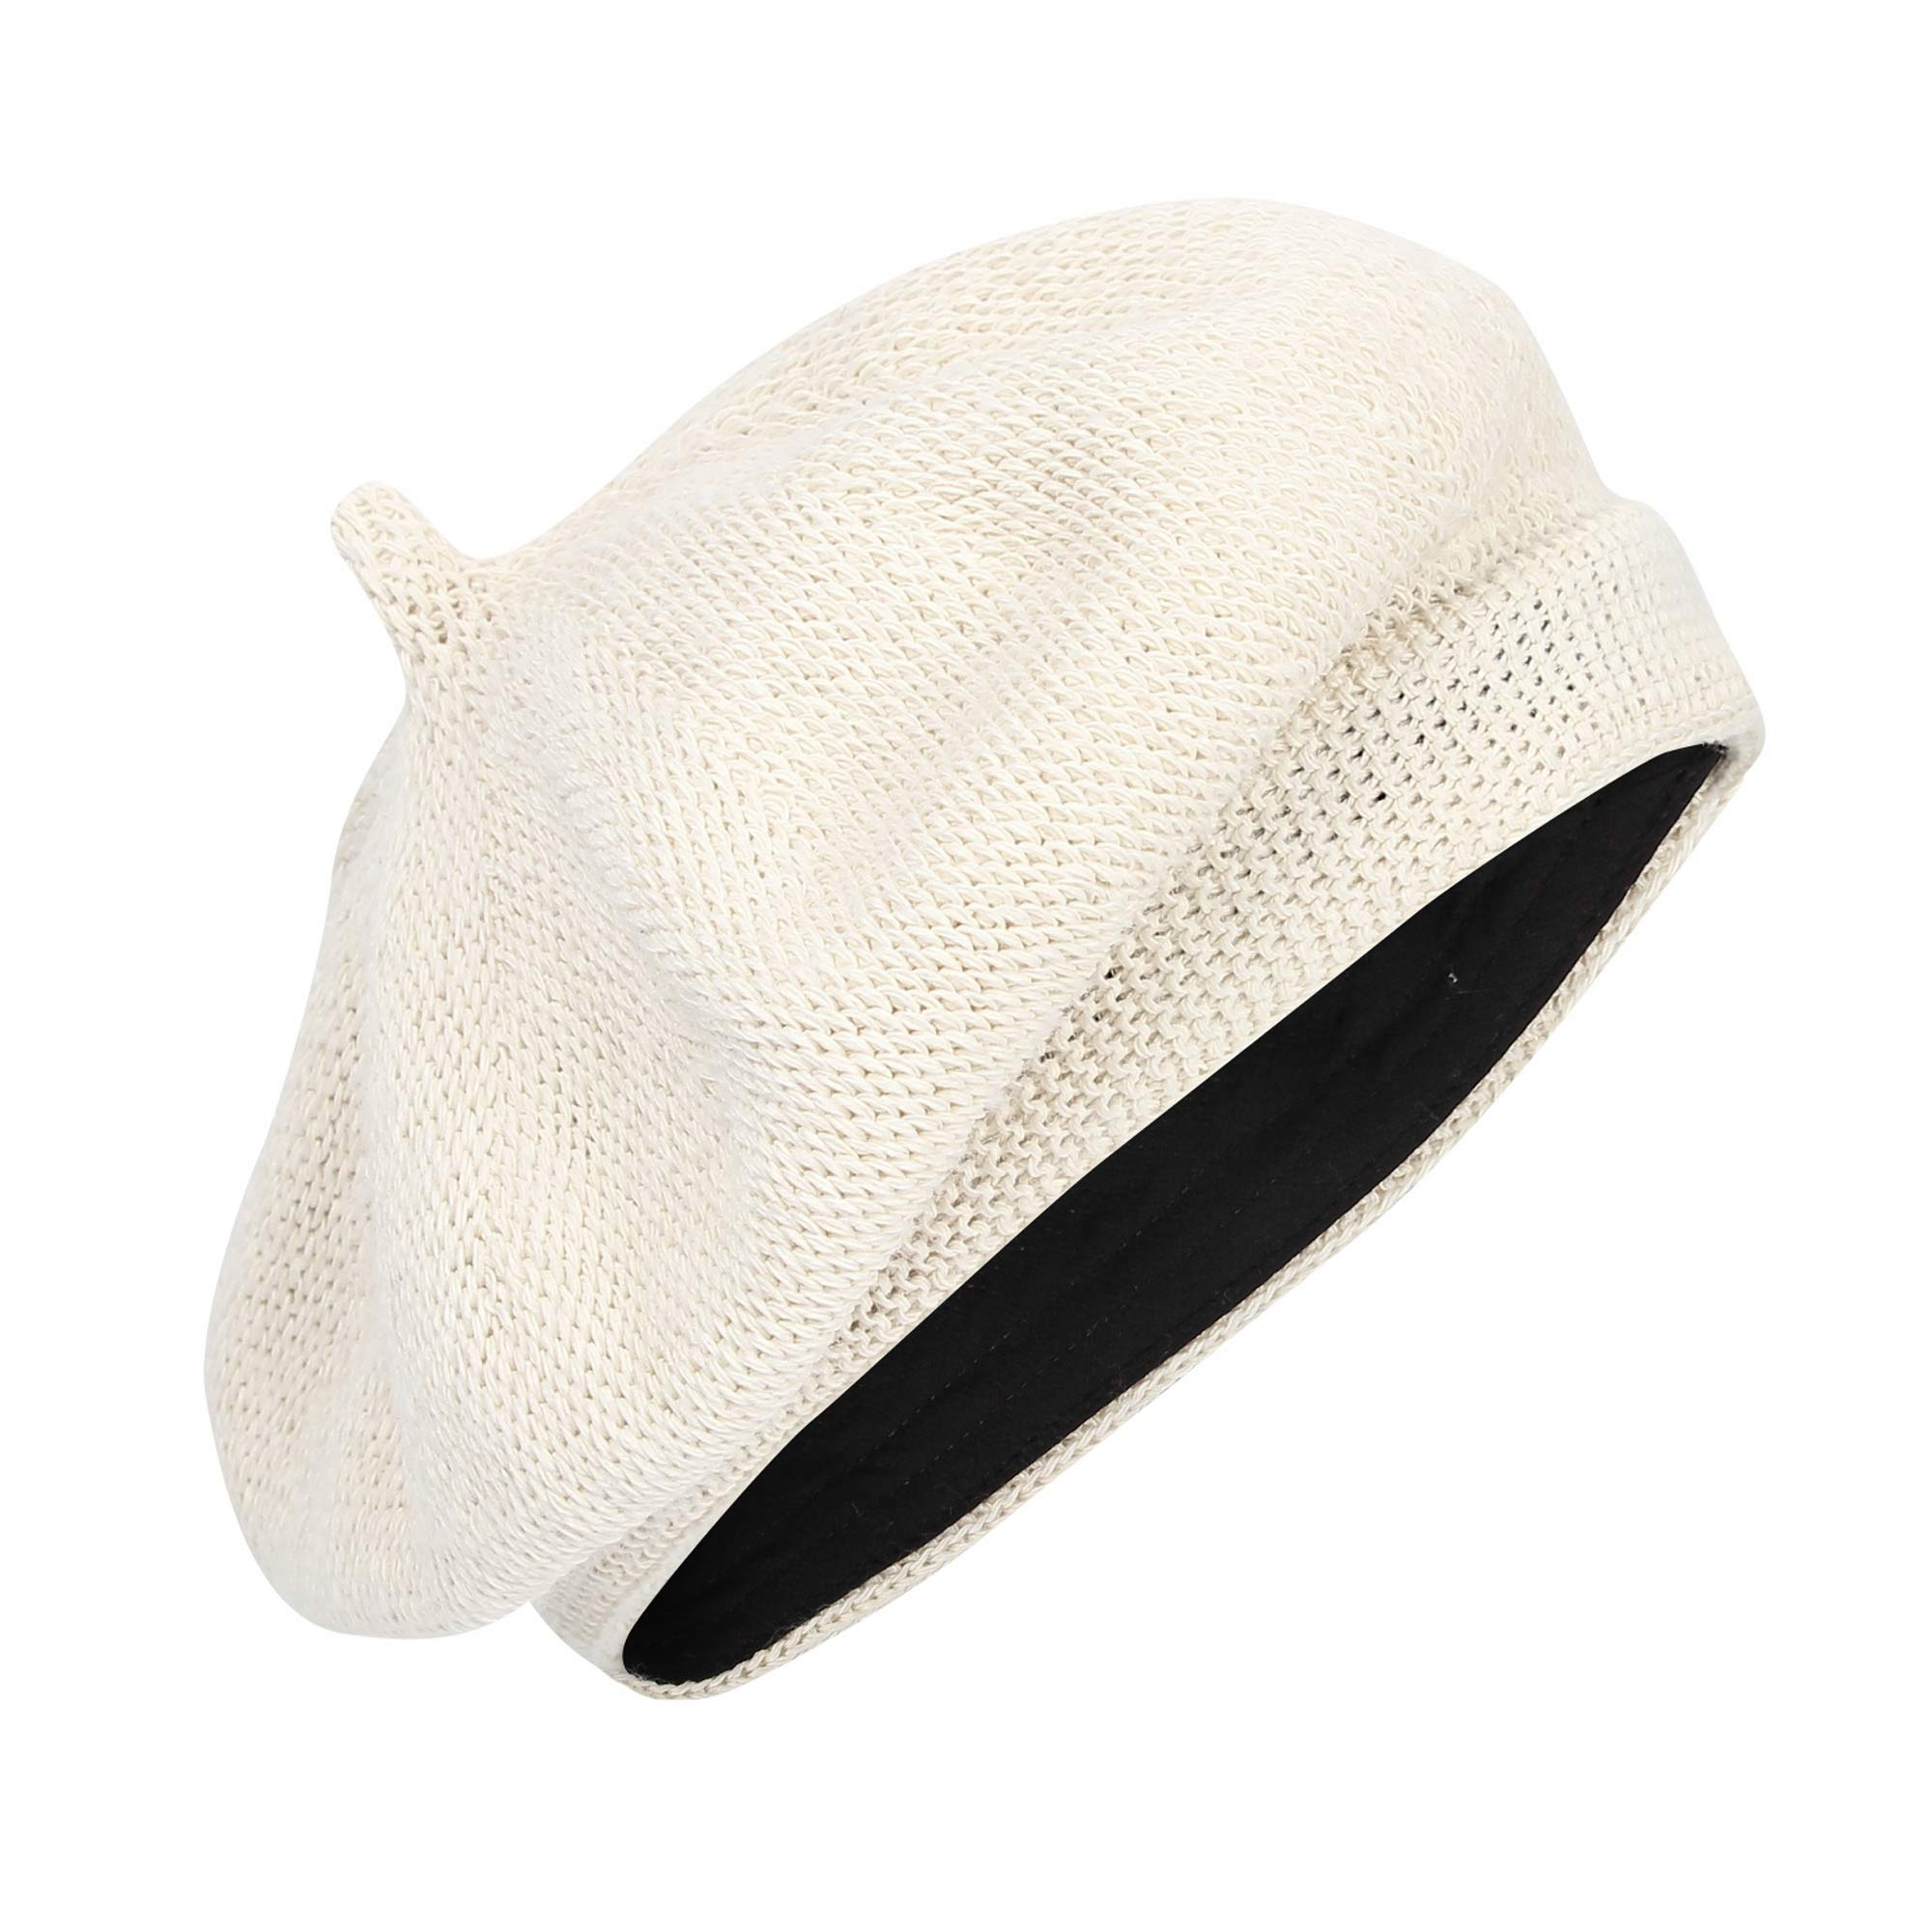 WITHMOONS Beret Hat Breathable Mesh Summer Straw French Berets KRF1165 (Ivory)